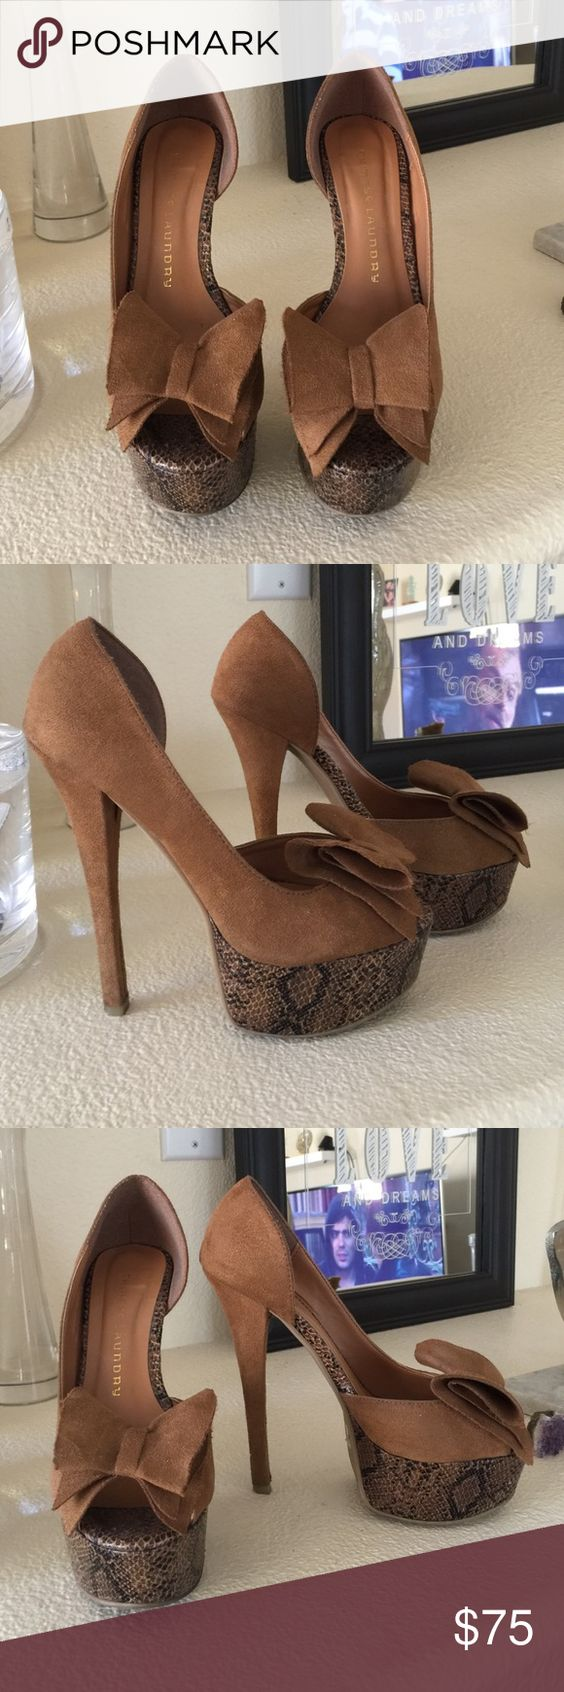 LIKE NEW💫 Chinese Laundry Heels Beautiful light brown Chinese Laundry suede heels featuring a fabric bow in the front and animal print platform and details. Gorgeous shoes! ✨ worn lightly and in excellent condition, a few marks on the back & heel but nothing too noticeable. Chinese Laundry Shoes Platforms